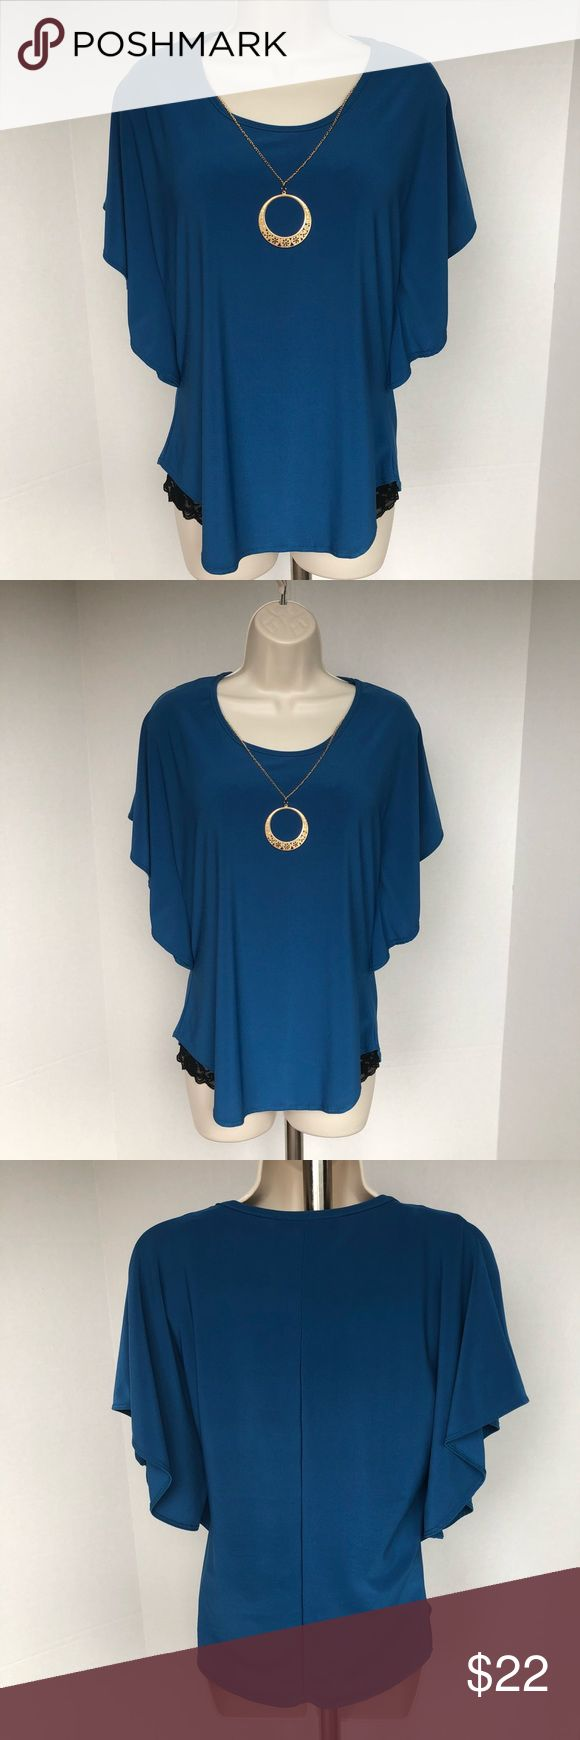 AMERICAN CITY WEAR BLOUSE Beautiful blue batwing blouse with gold circle pendant American City Wear Tops Blouses